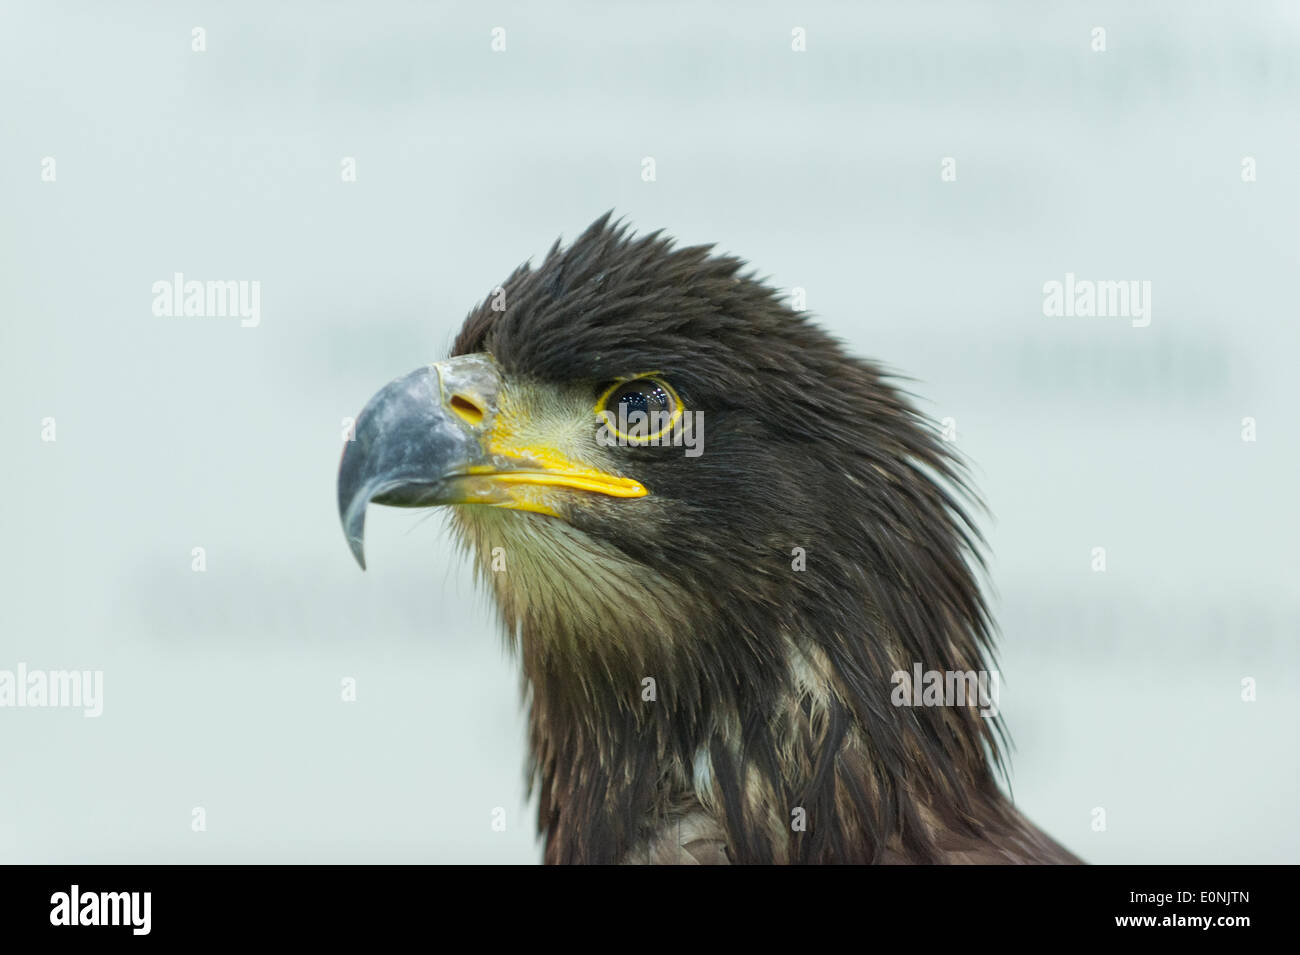 London, UK. 17th May 2014. The London Pet Show sponsored by My Pet online. Bald Eagle Hartley poses for a photograph. Stock Photo